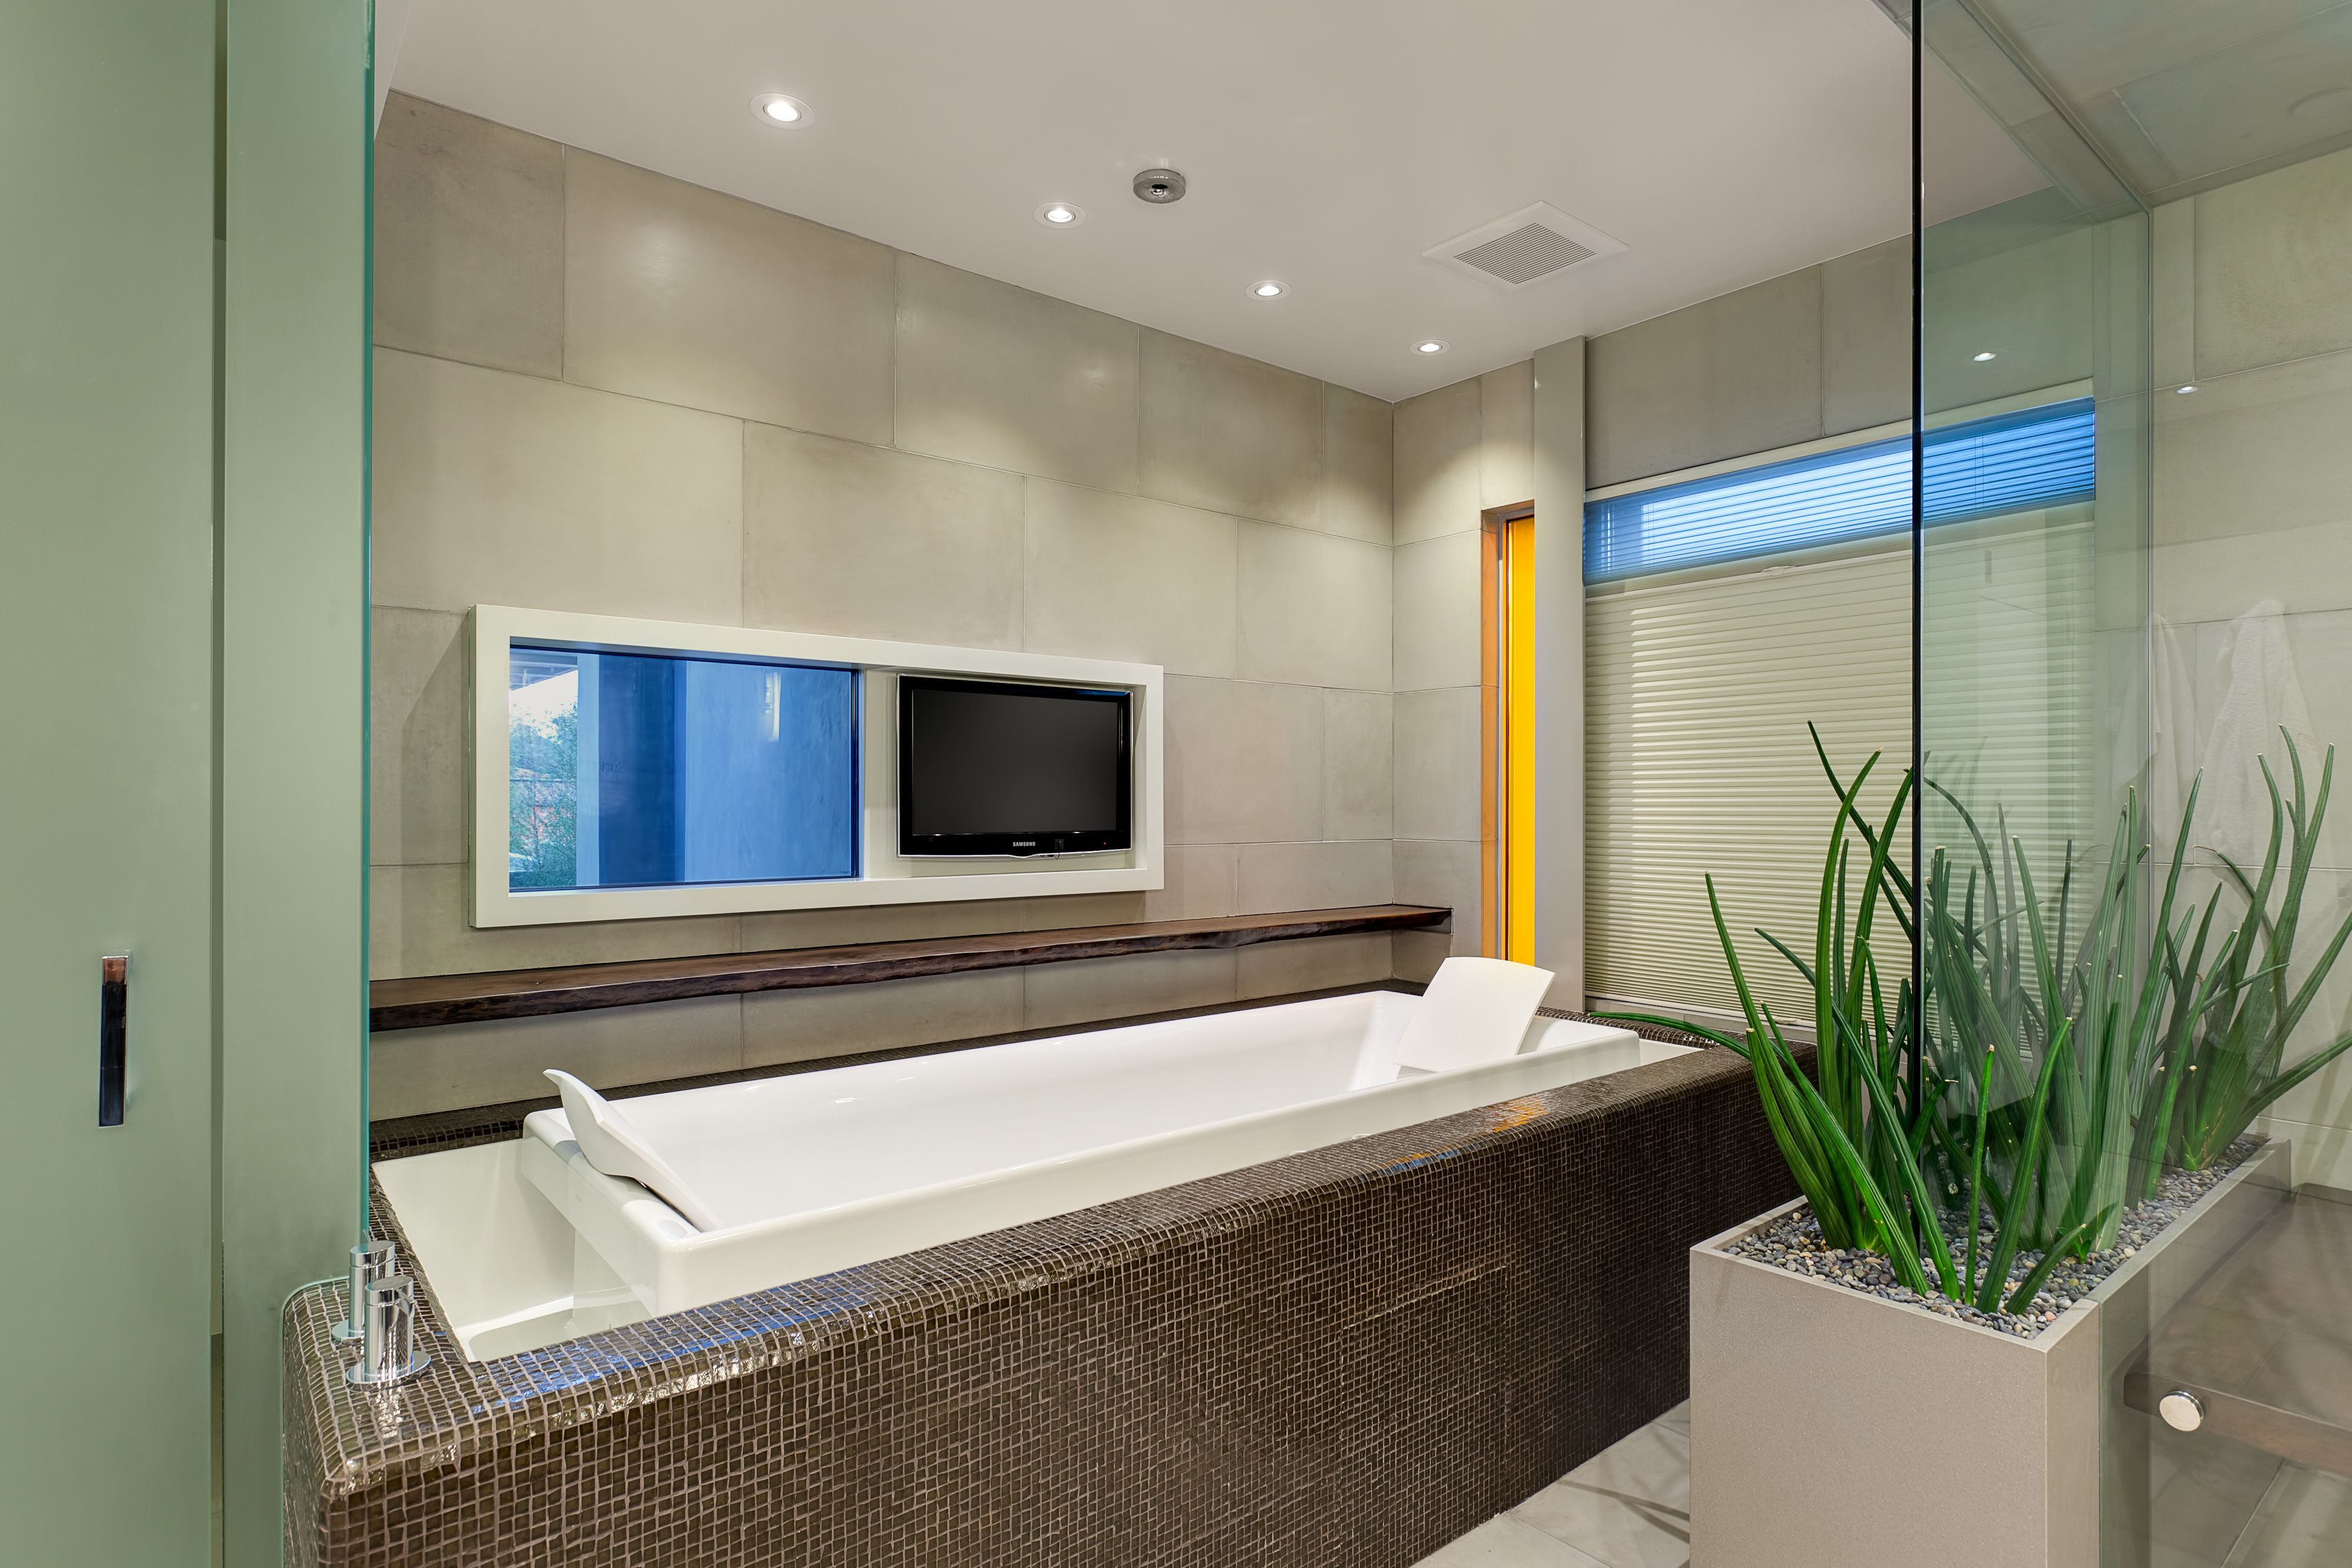 Our Work With Images Bathroom Lighting Inspiration Light